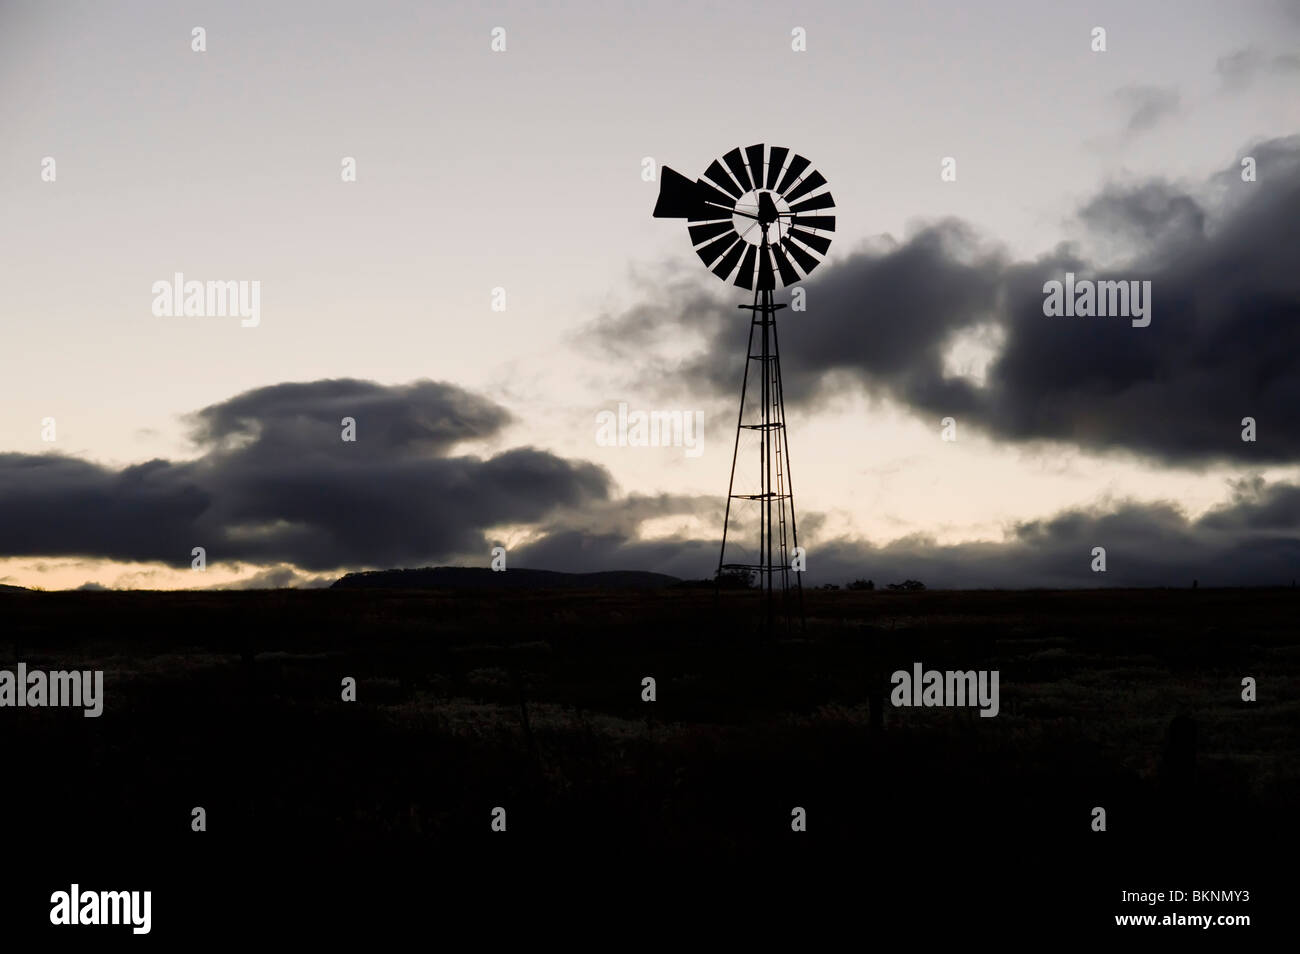 Windmill silhouetted against clouds Stock Photo